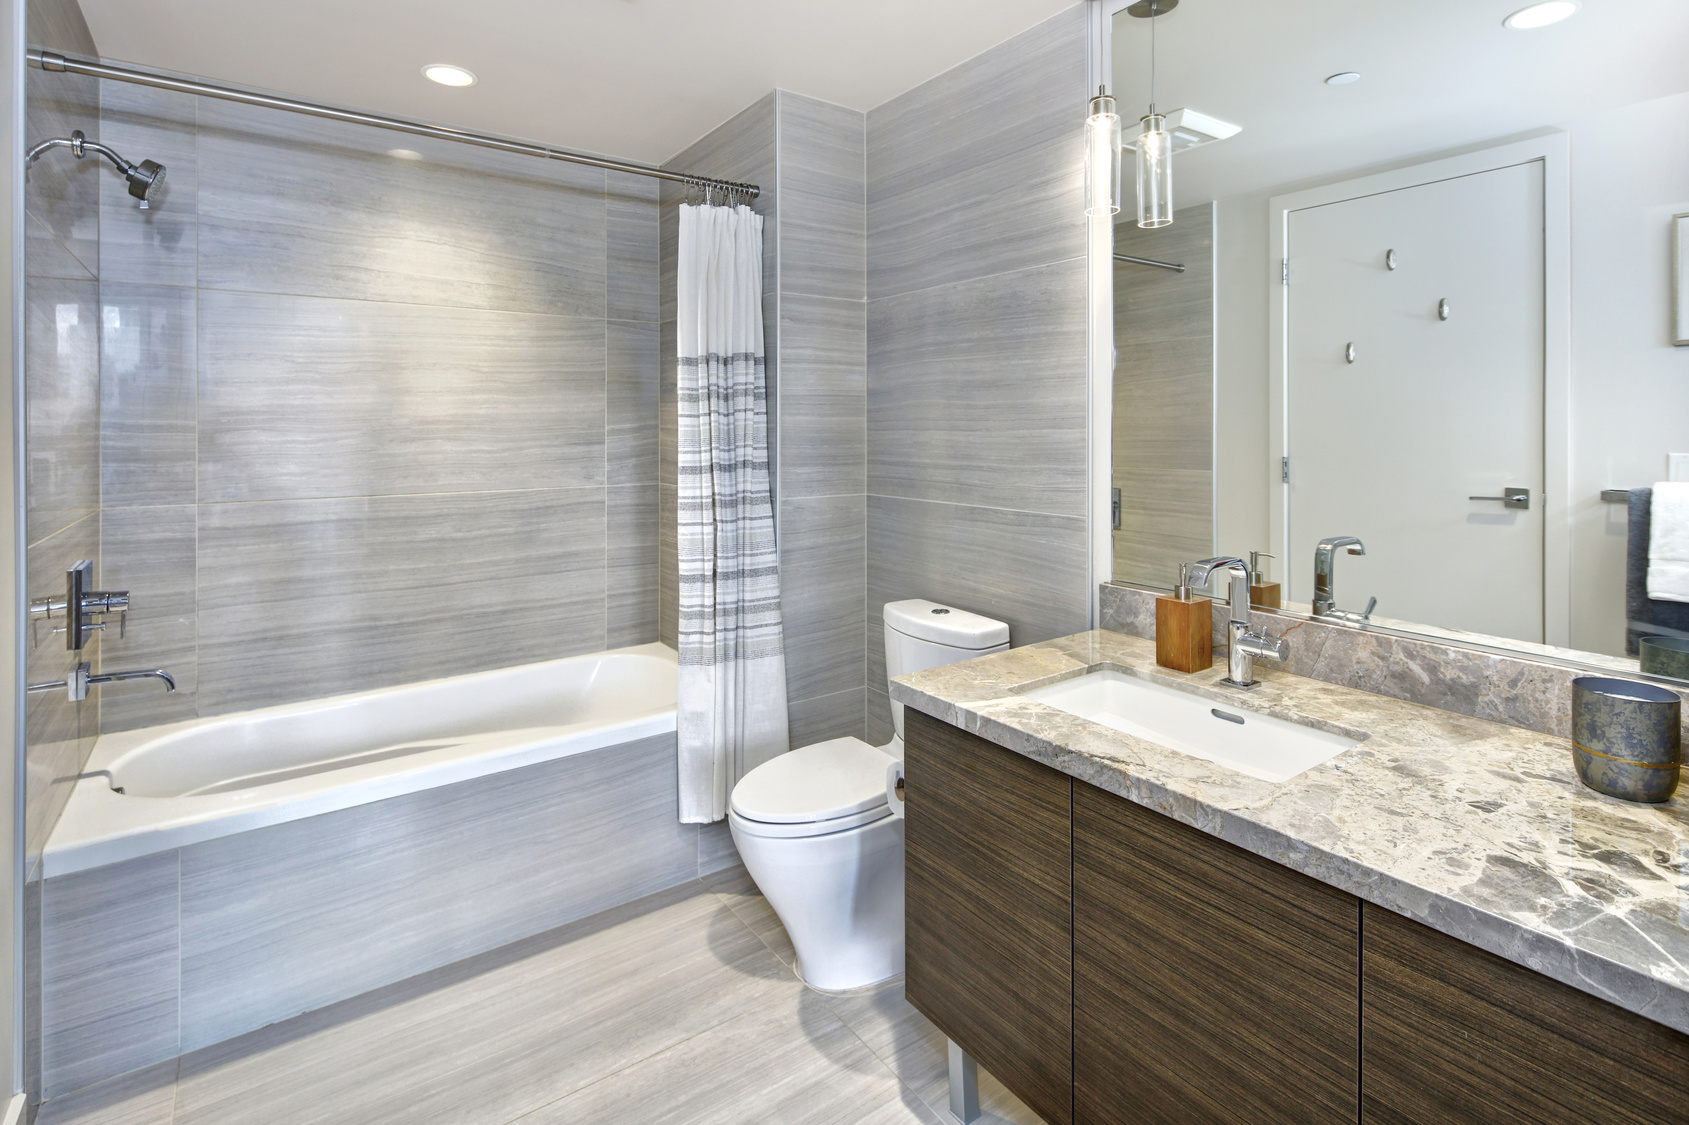 7 Small Ways You Can Give Your Bathroom A Big Transformation Tandem